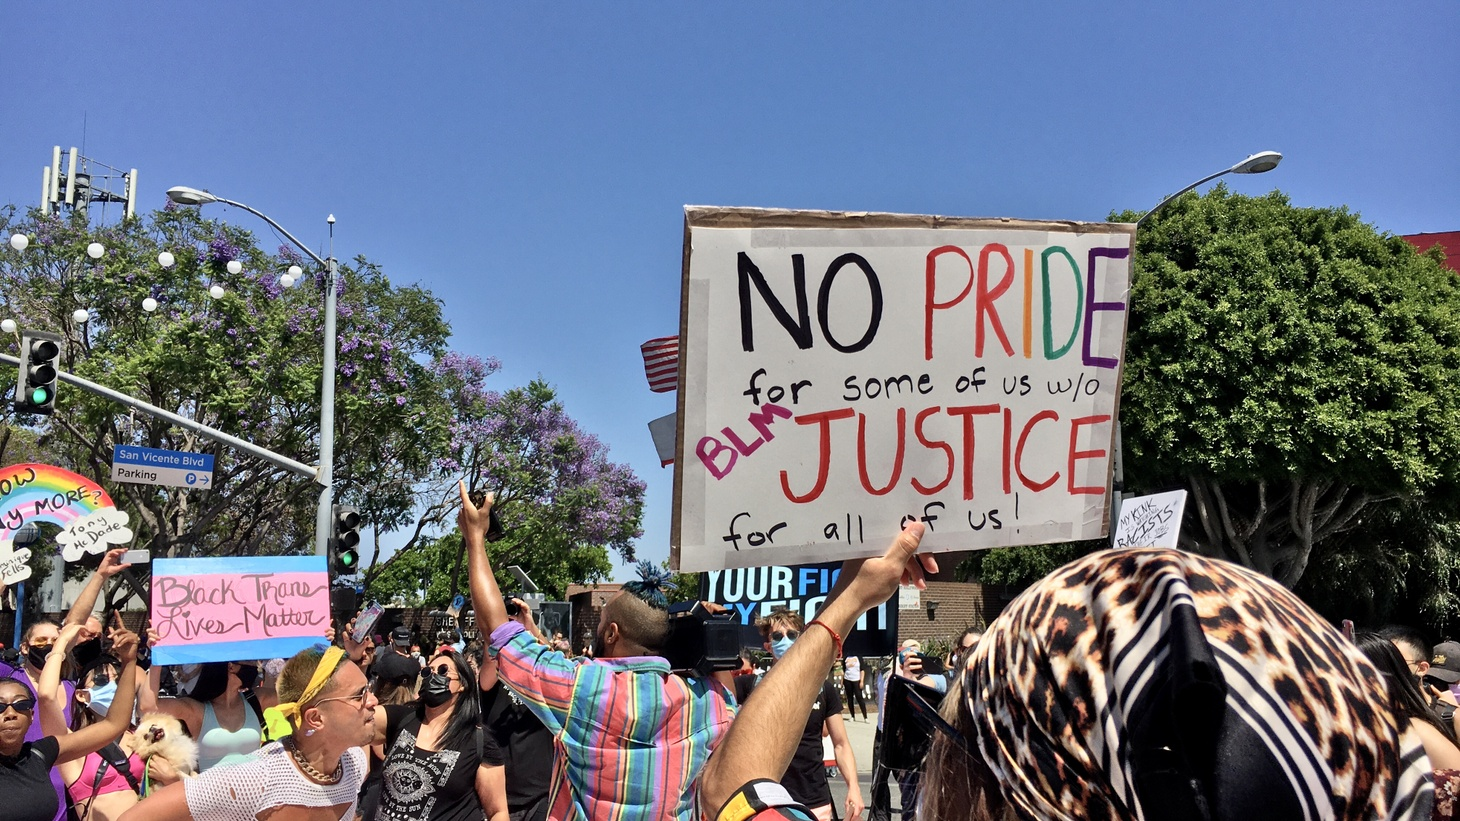 The All Black Lives Matter march in LA on June 14 denounced racial injustice and pushed for LGBTQ rights.